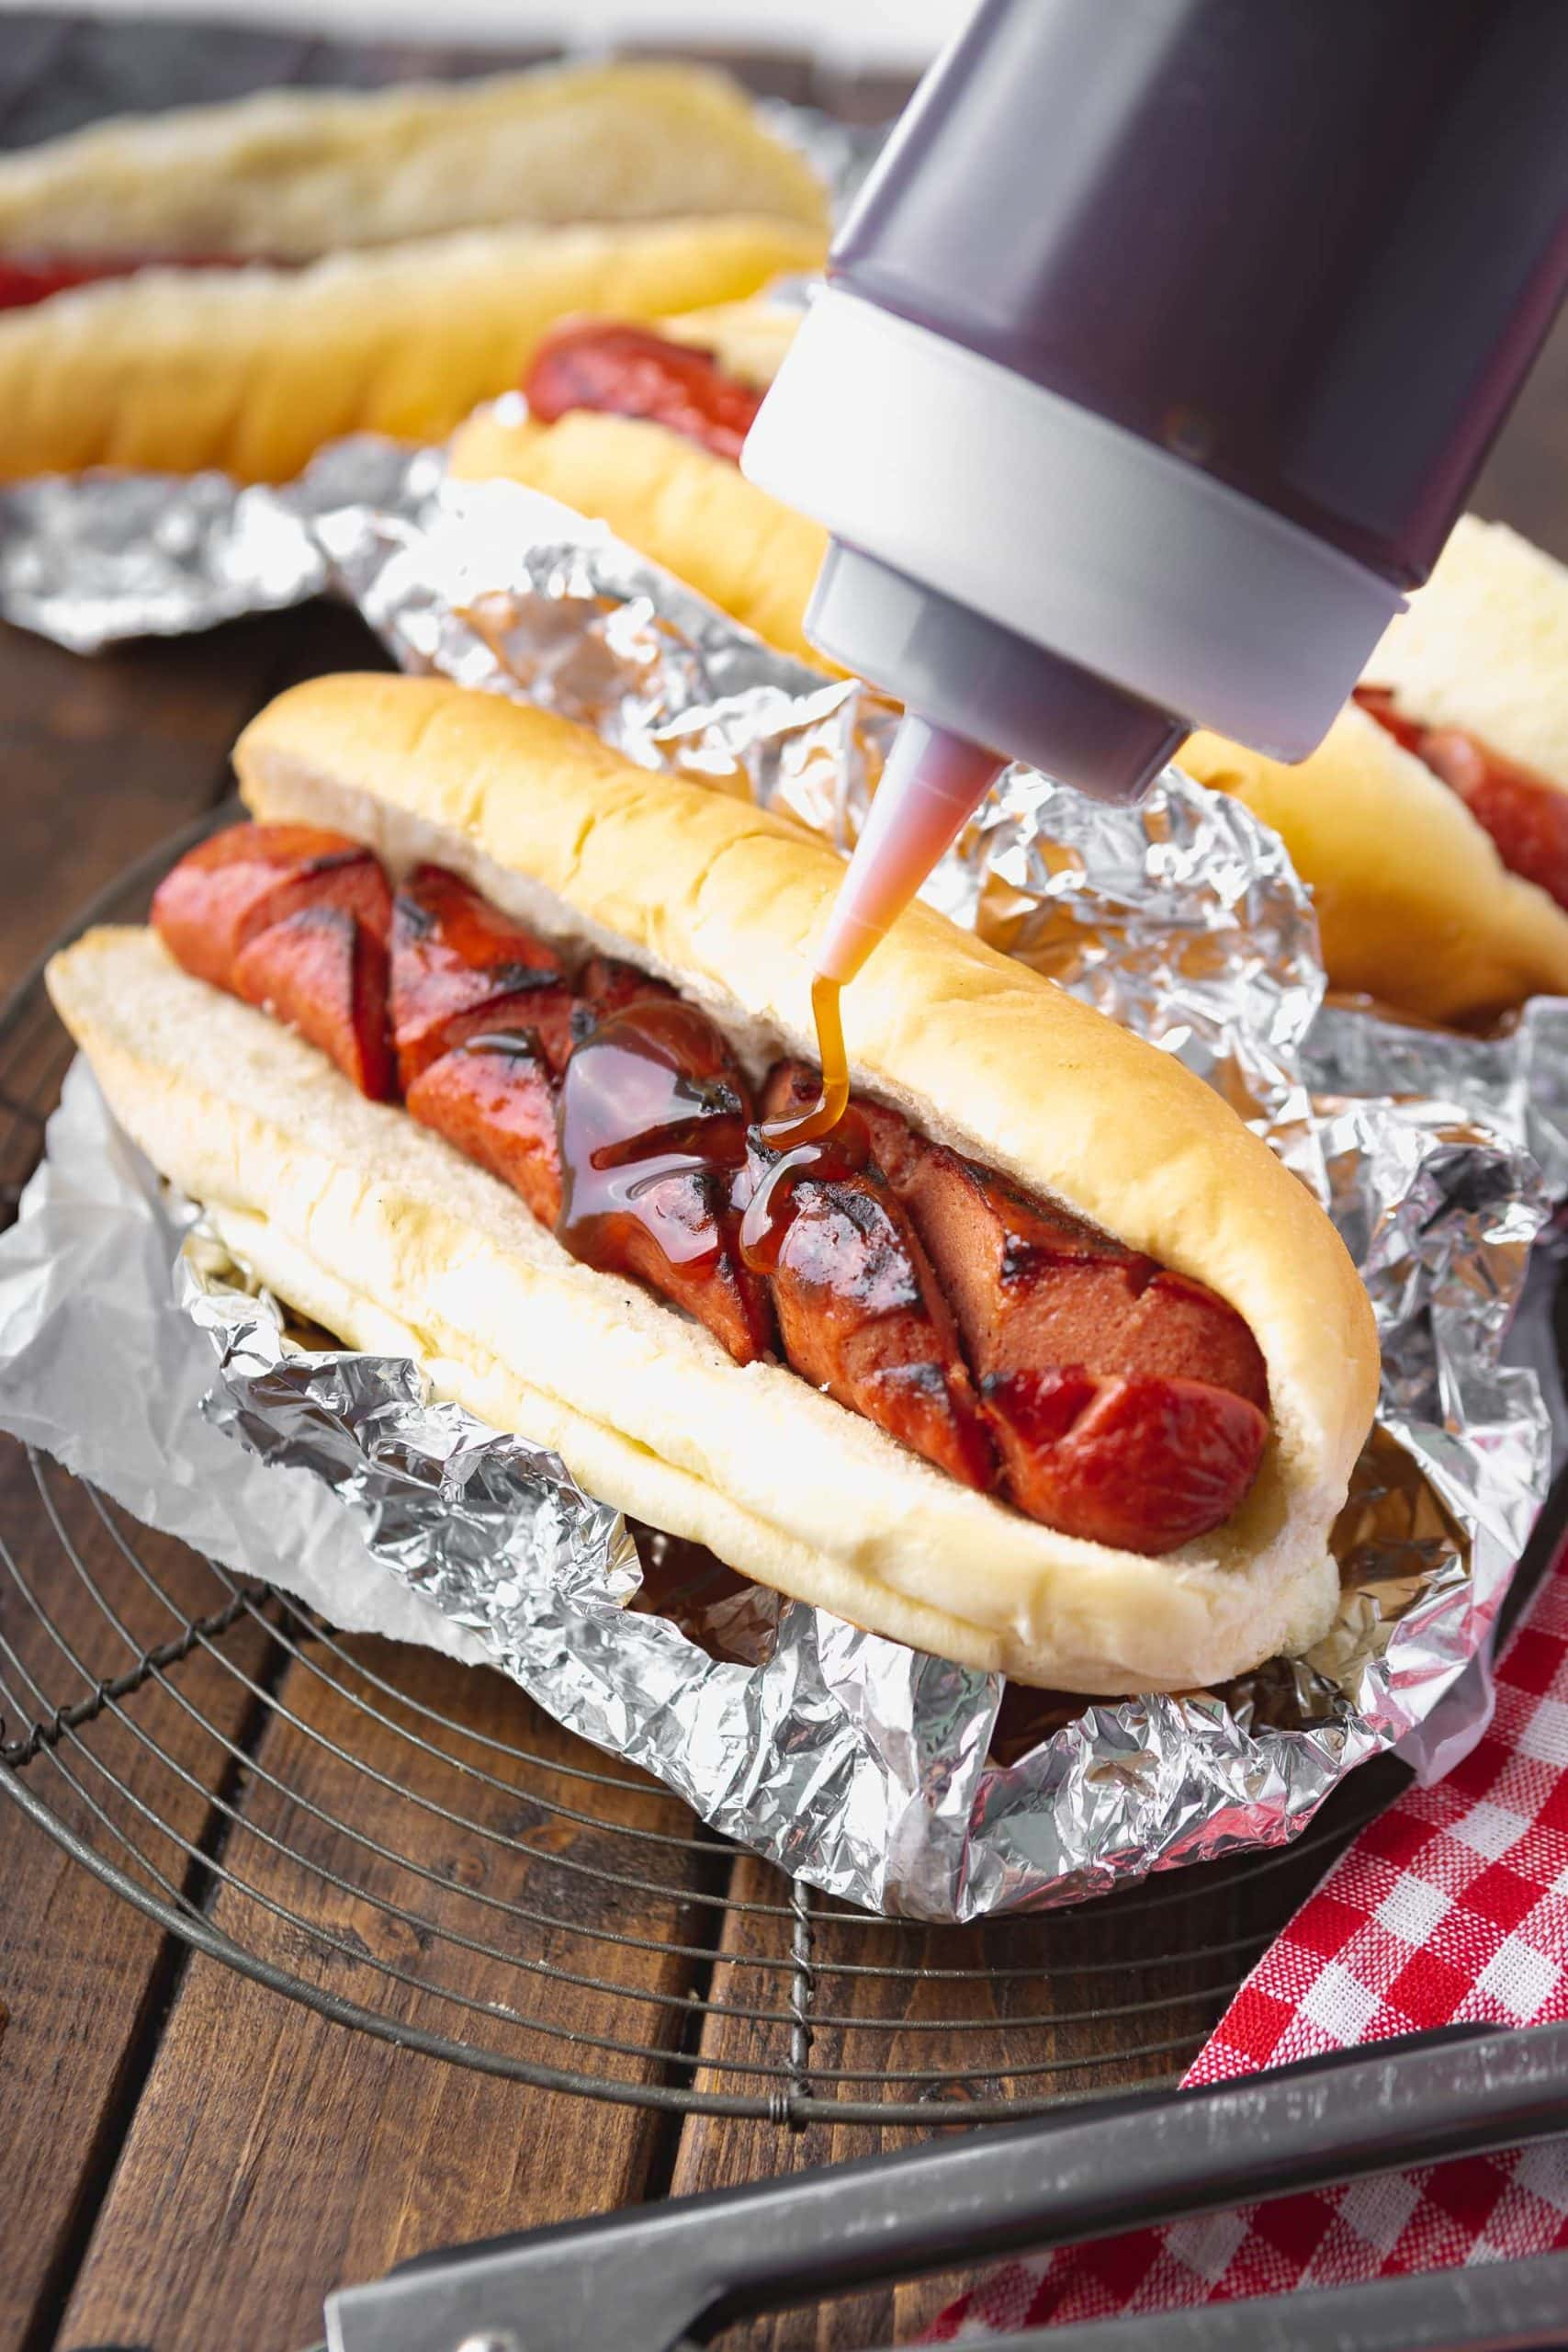 a photo of a grilled hotdog sitting in a bun inside of aluminum foil being drizzled with a sauce from a plastic bottle.